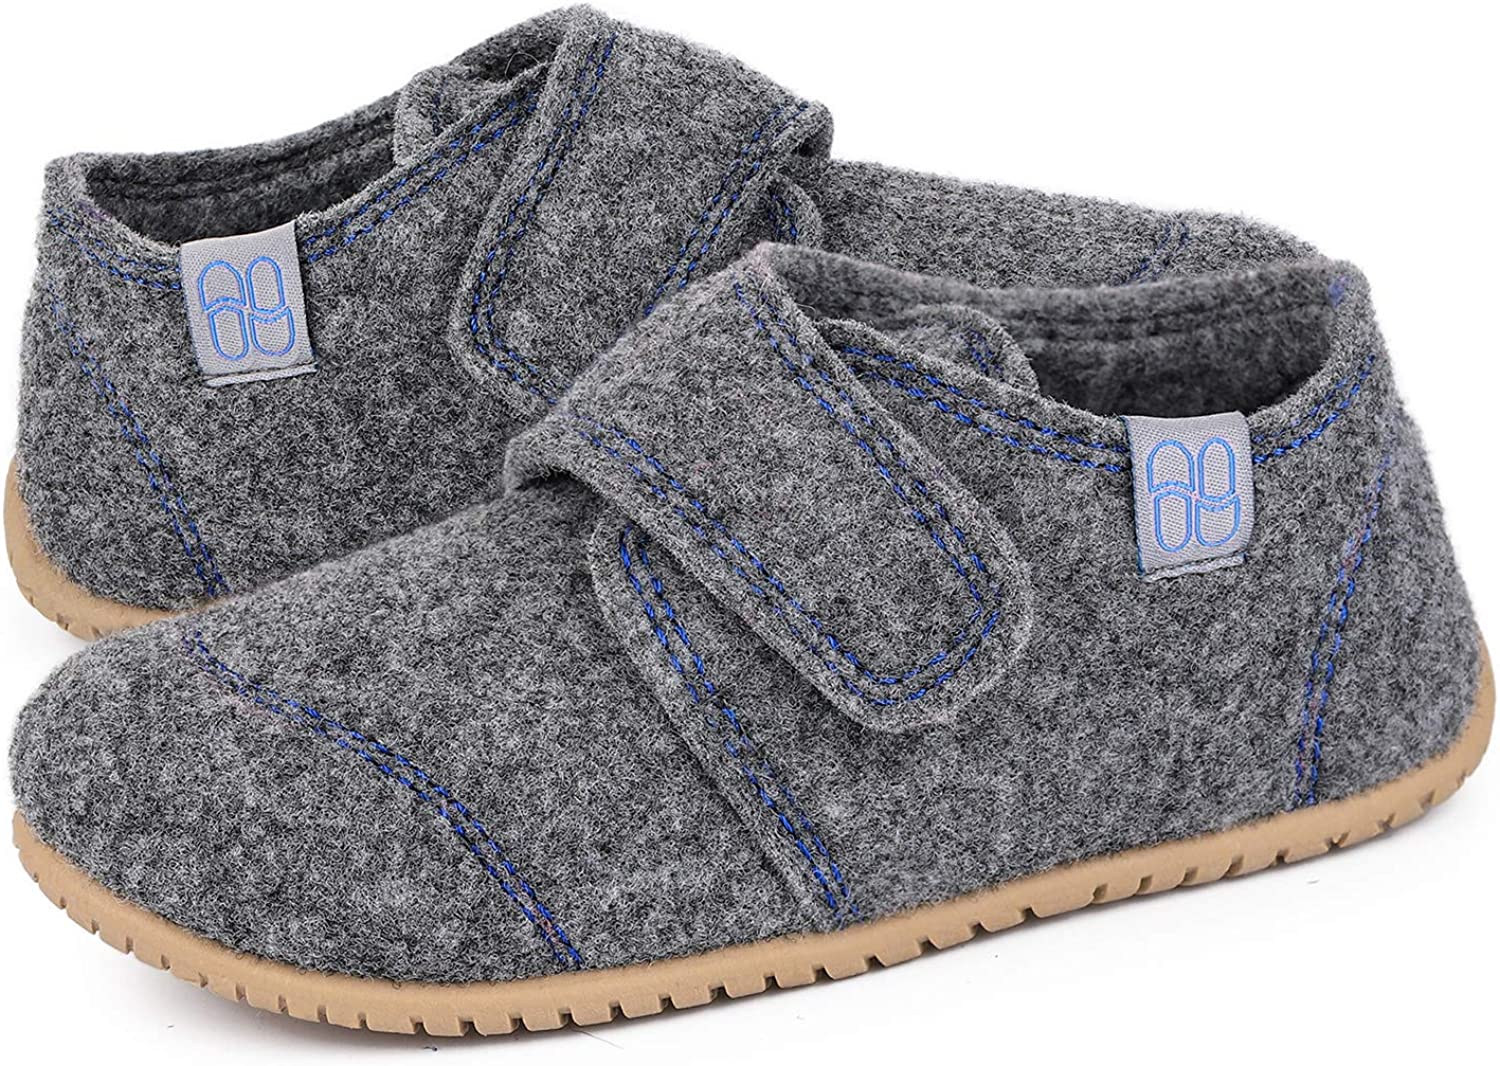 HomeTop Kids Soft Wool Felt House Shoes with Adjustable Hook and Loop